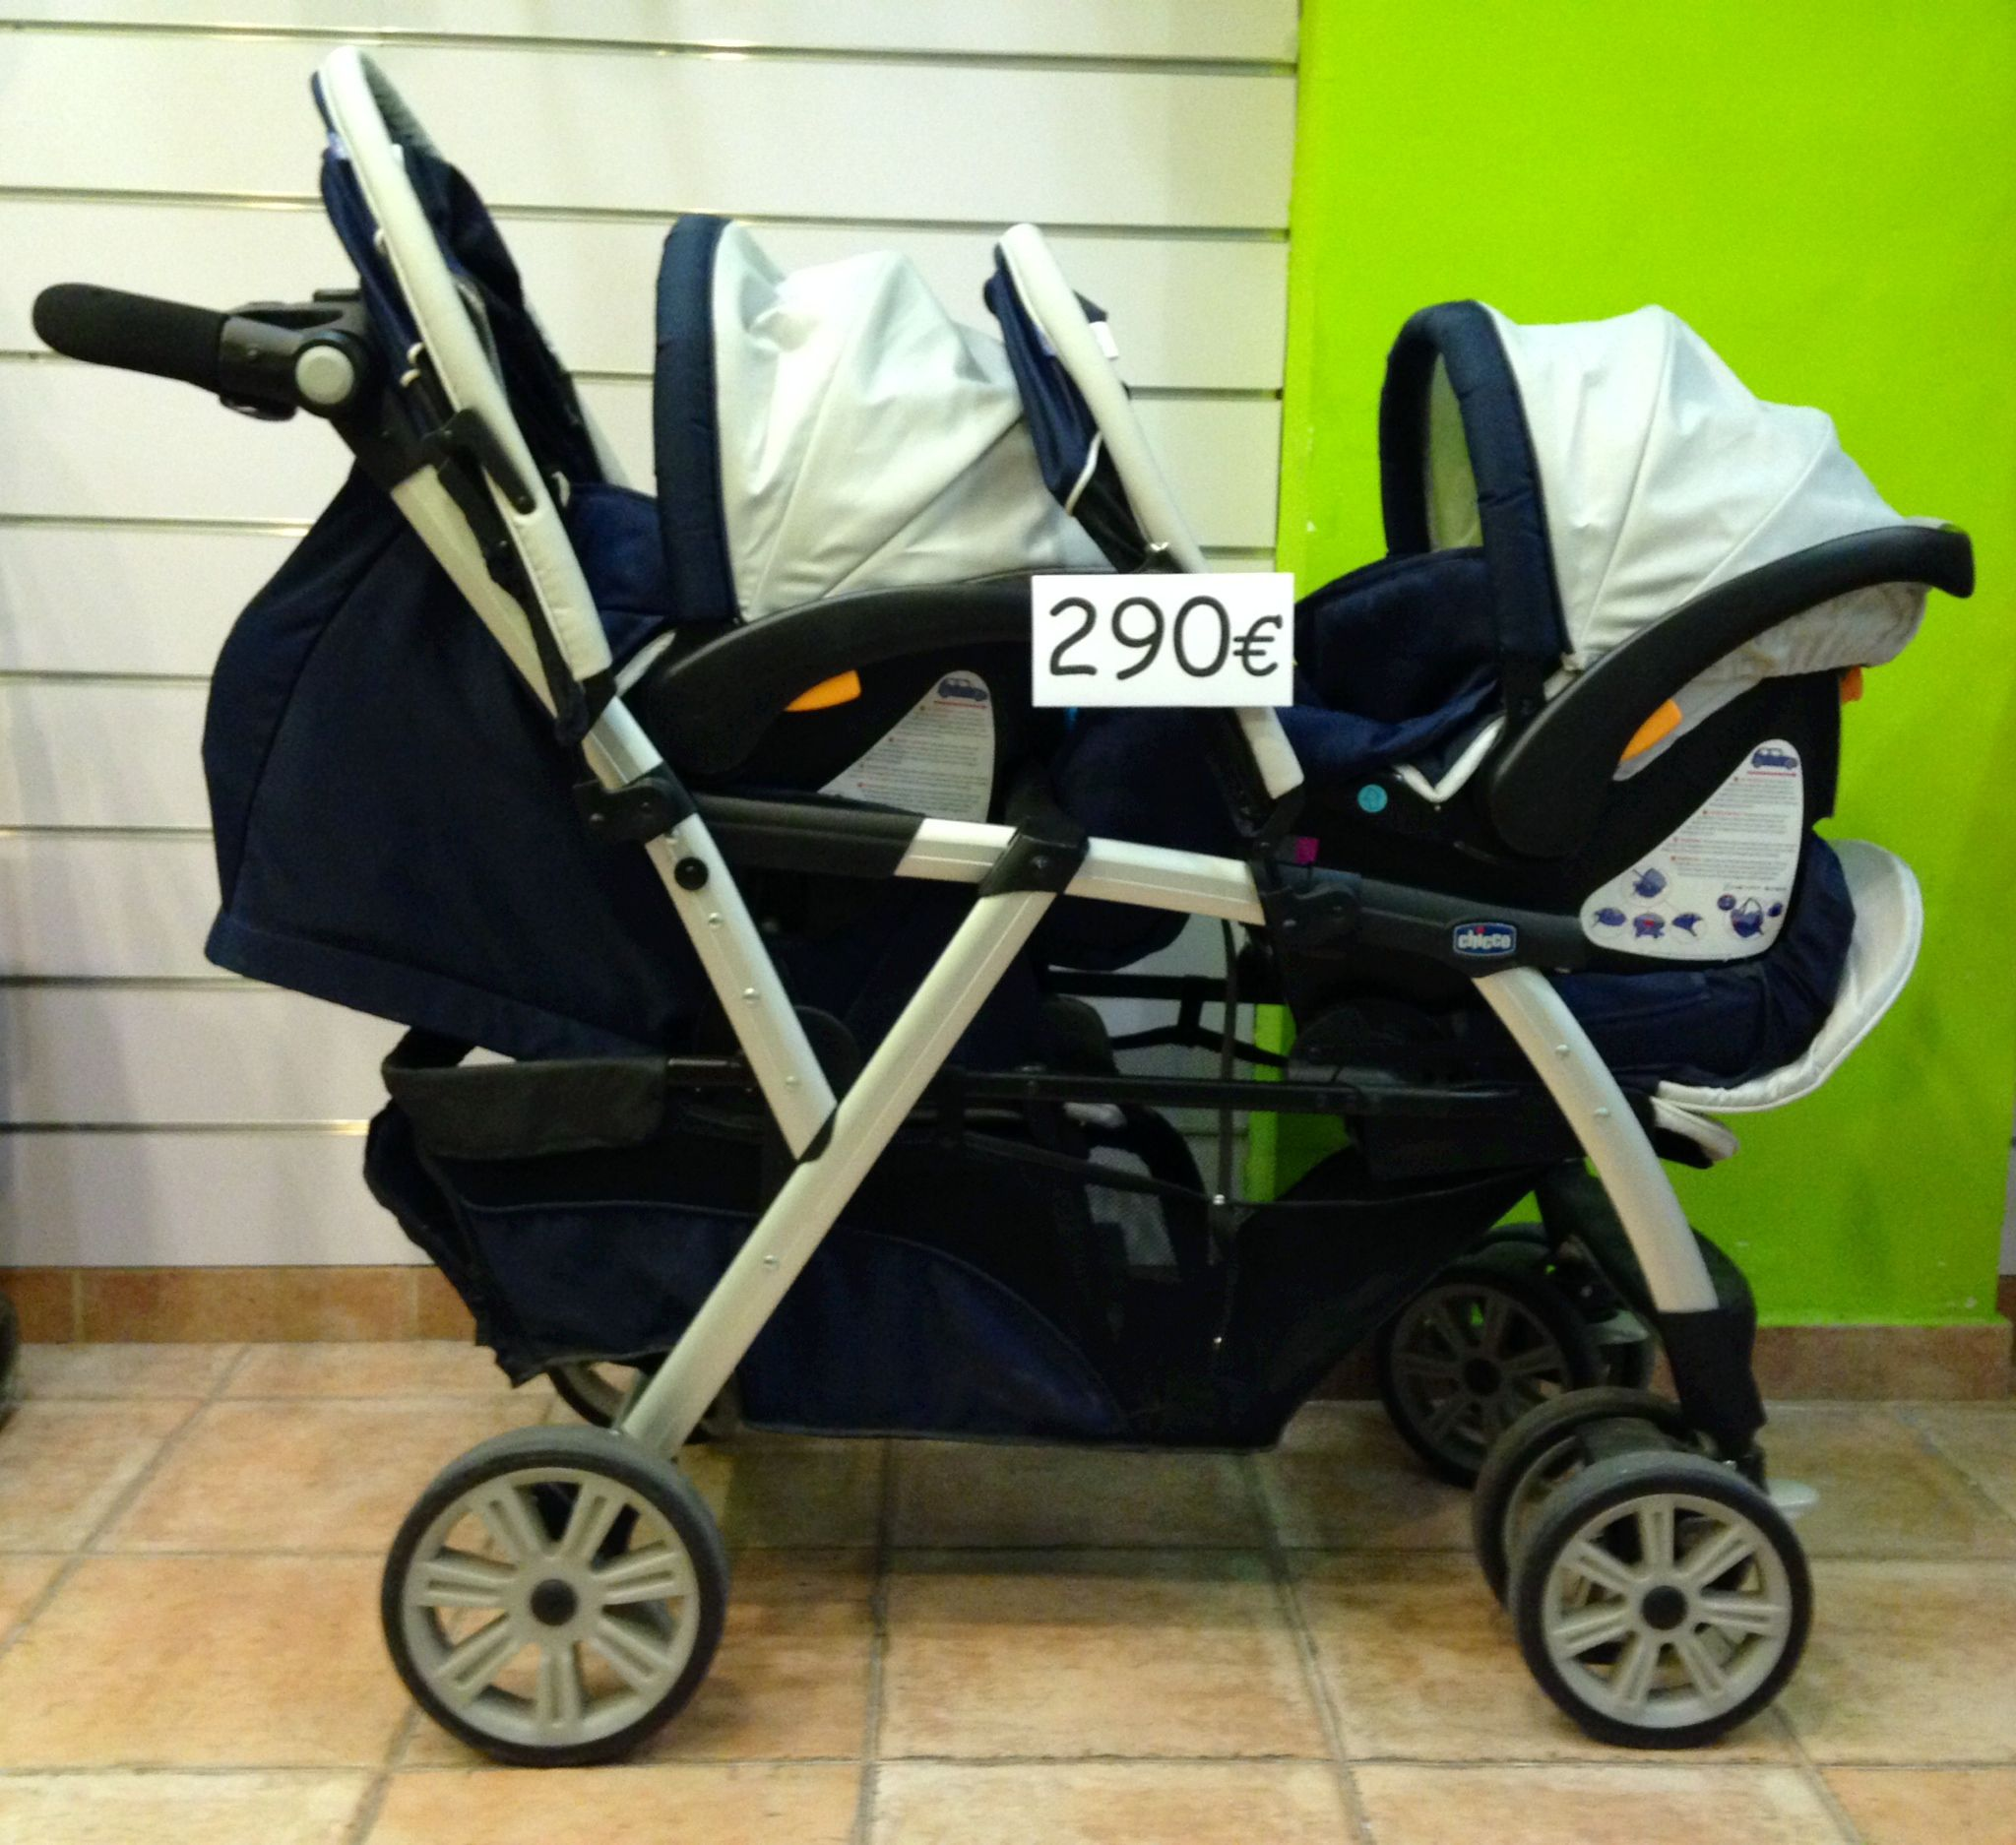 IMPECABLE por 290€! Gemelar Chicco Together + 2 sillas auto Key Fit ...